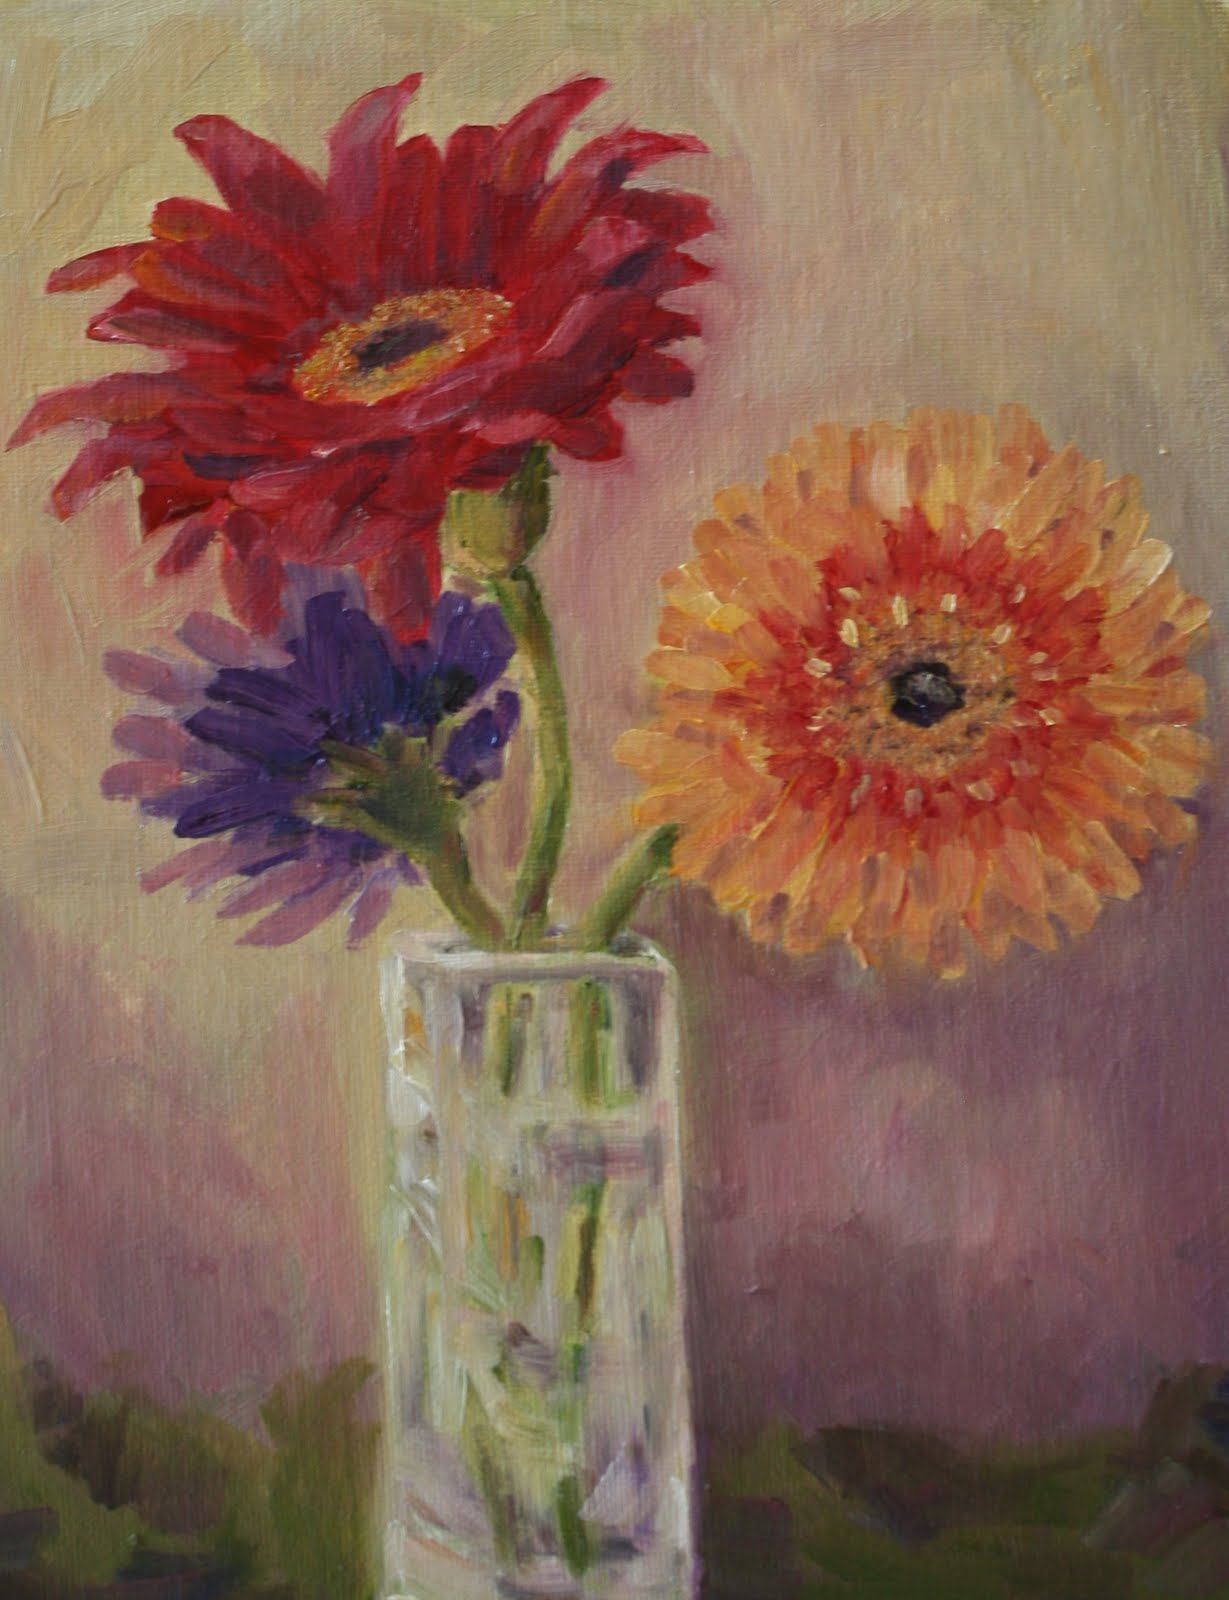 """Red Gerber Daisy and Friends"" original fine art by Maggie Flatley"